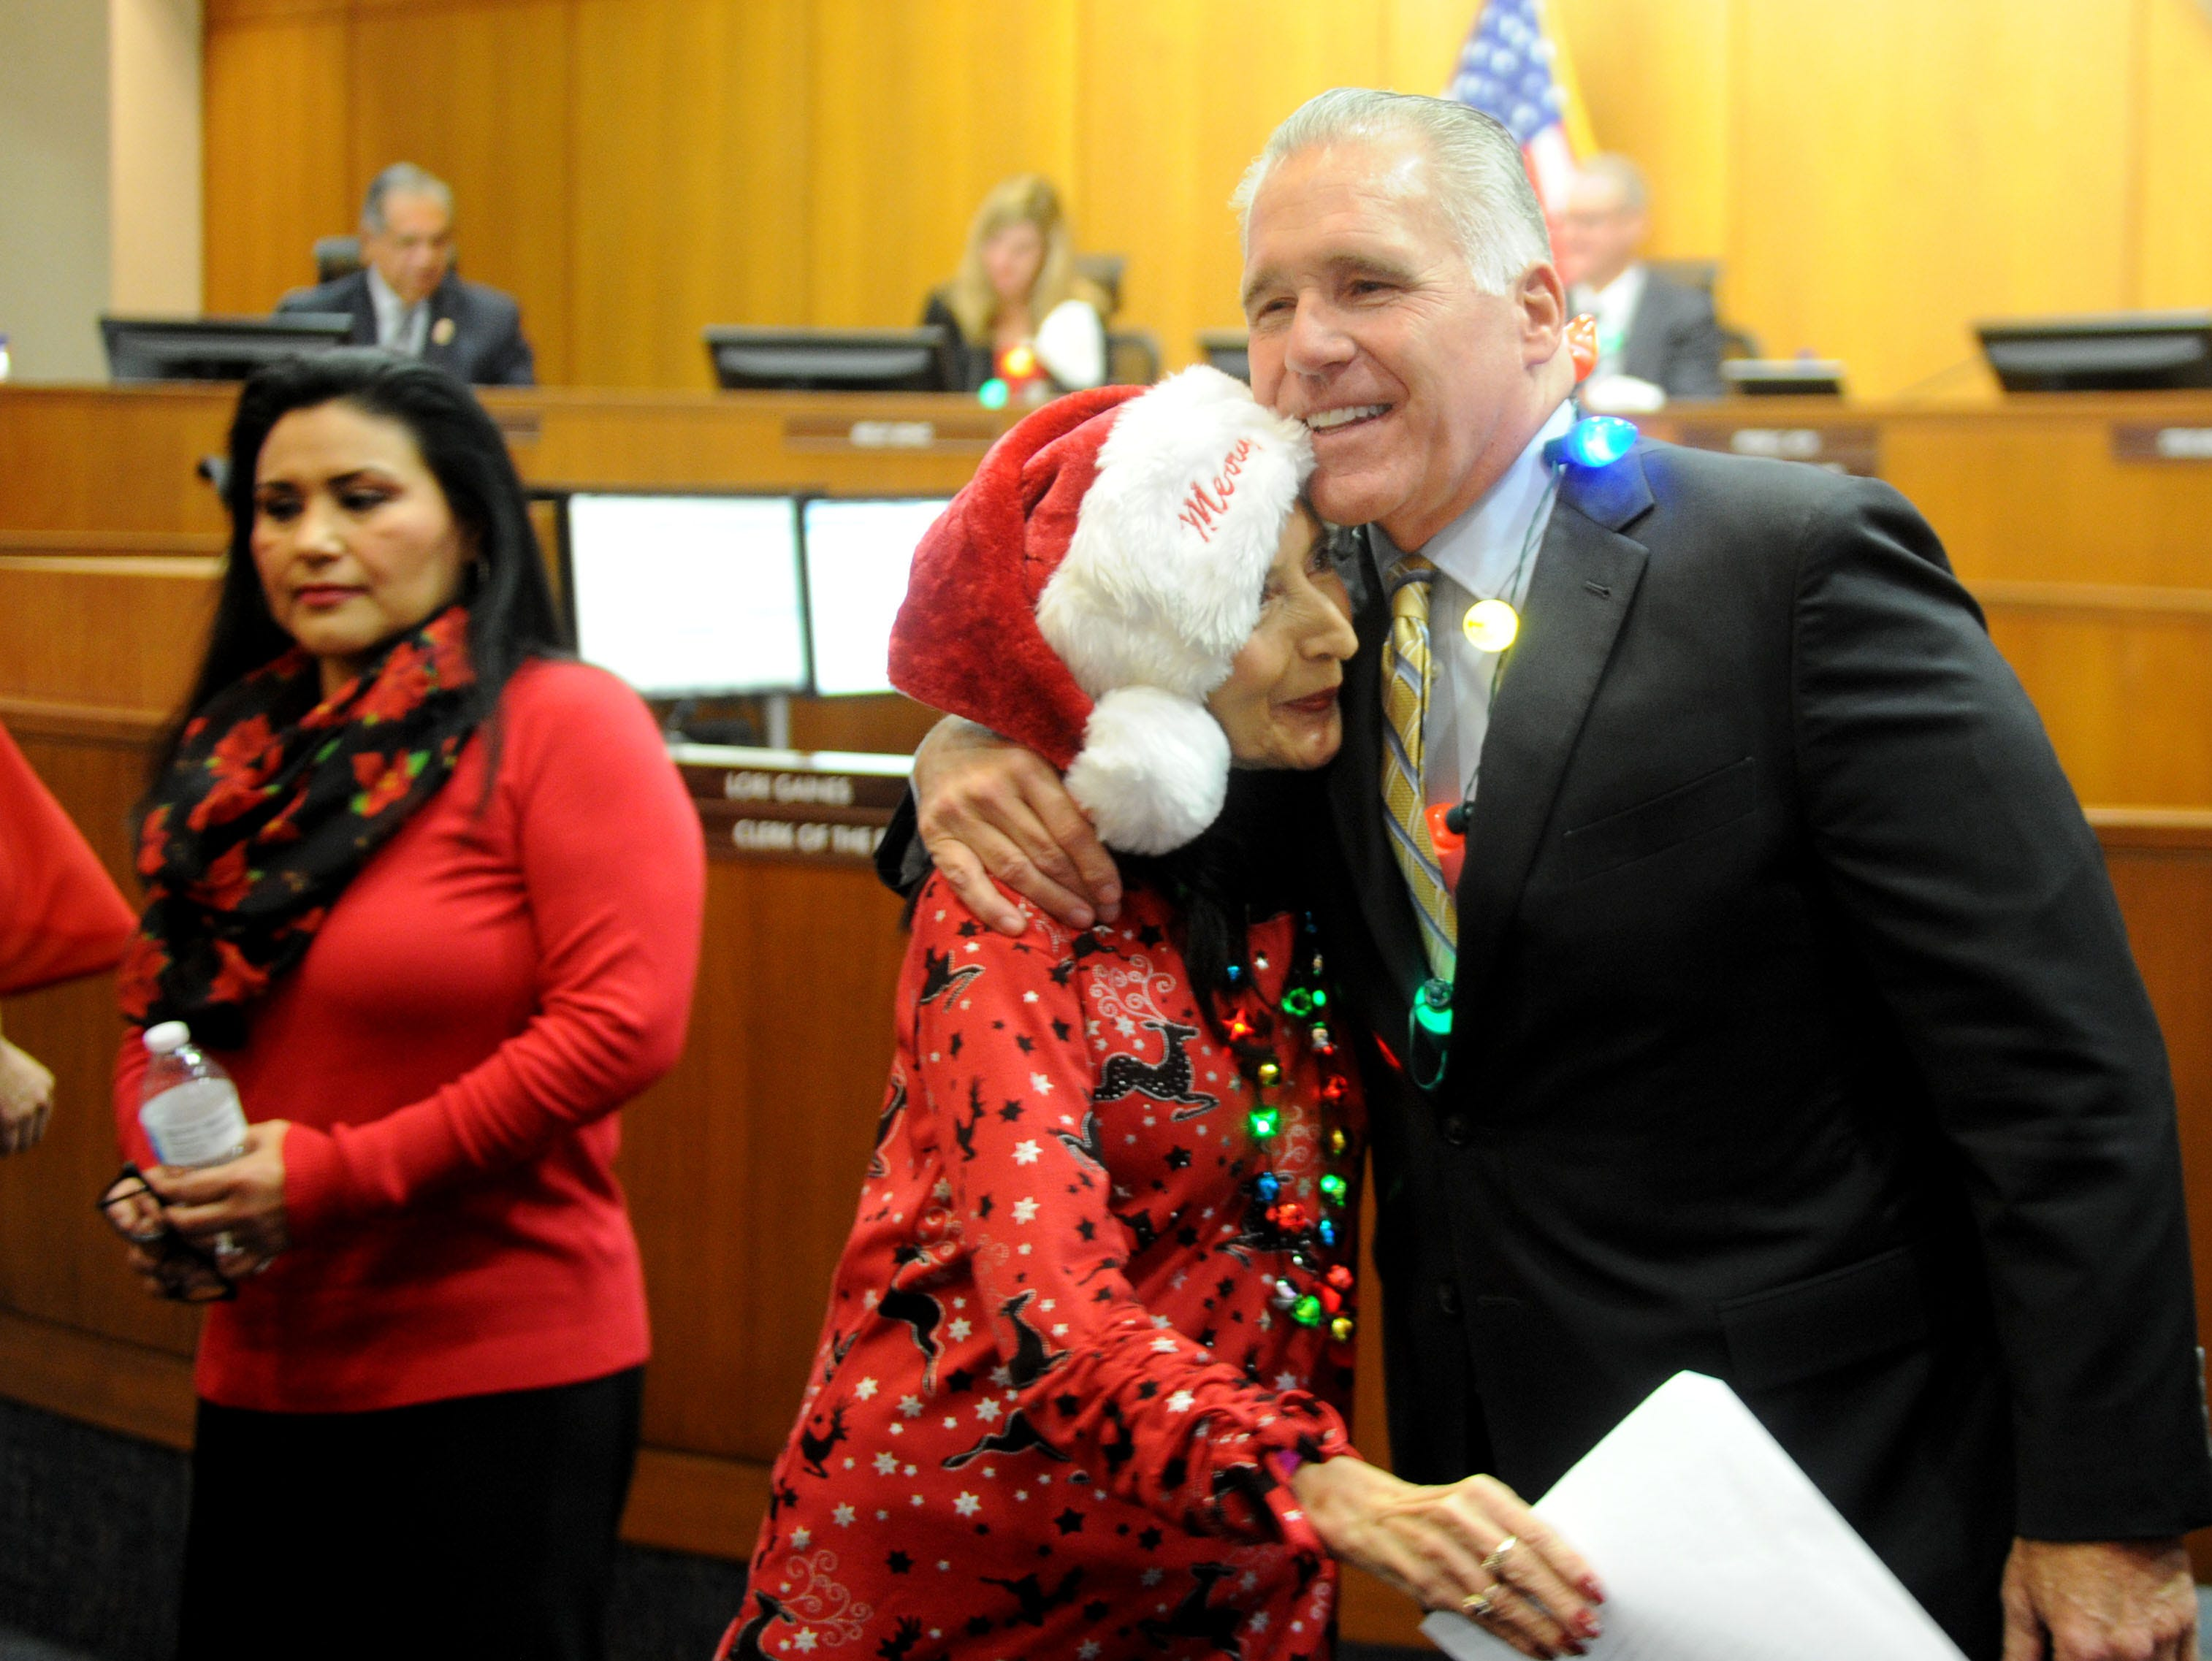 Retiree Olivia Lopez, a member of the County Christmas Carolers, hugs Supervisor Peter Foy after the group sings to him. The occasion marked Foy's last board meeting as a county supervisor. His term ends Jan. 7.